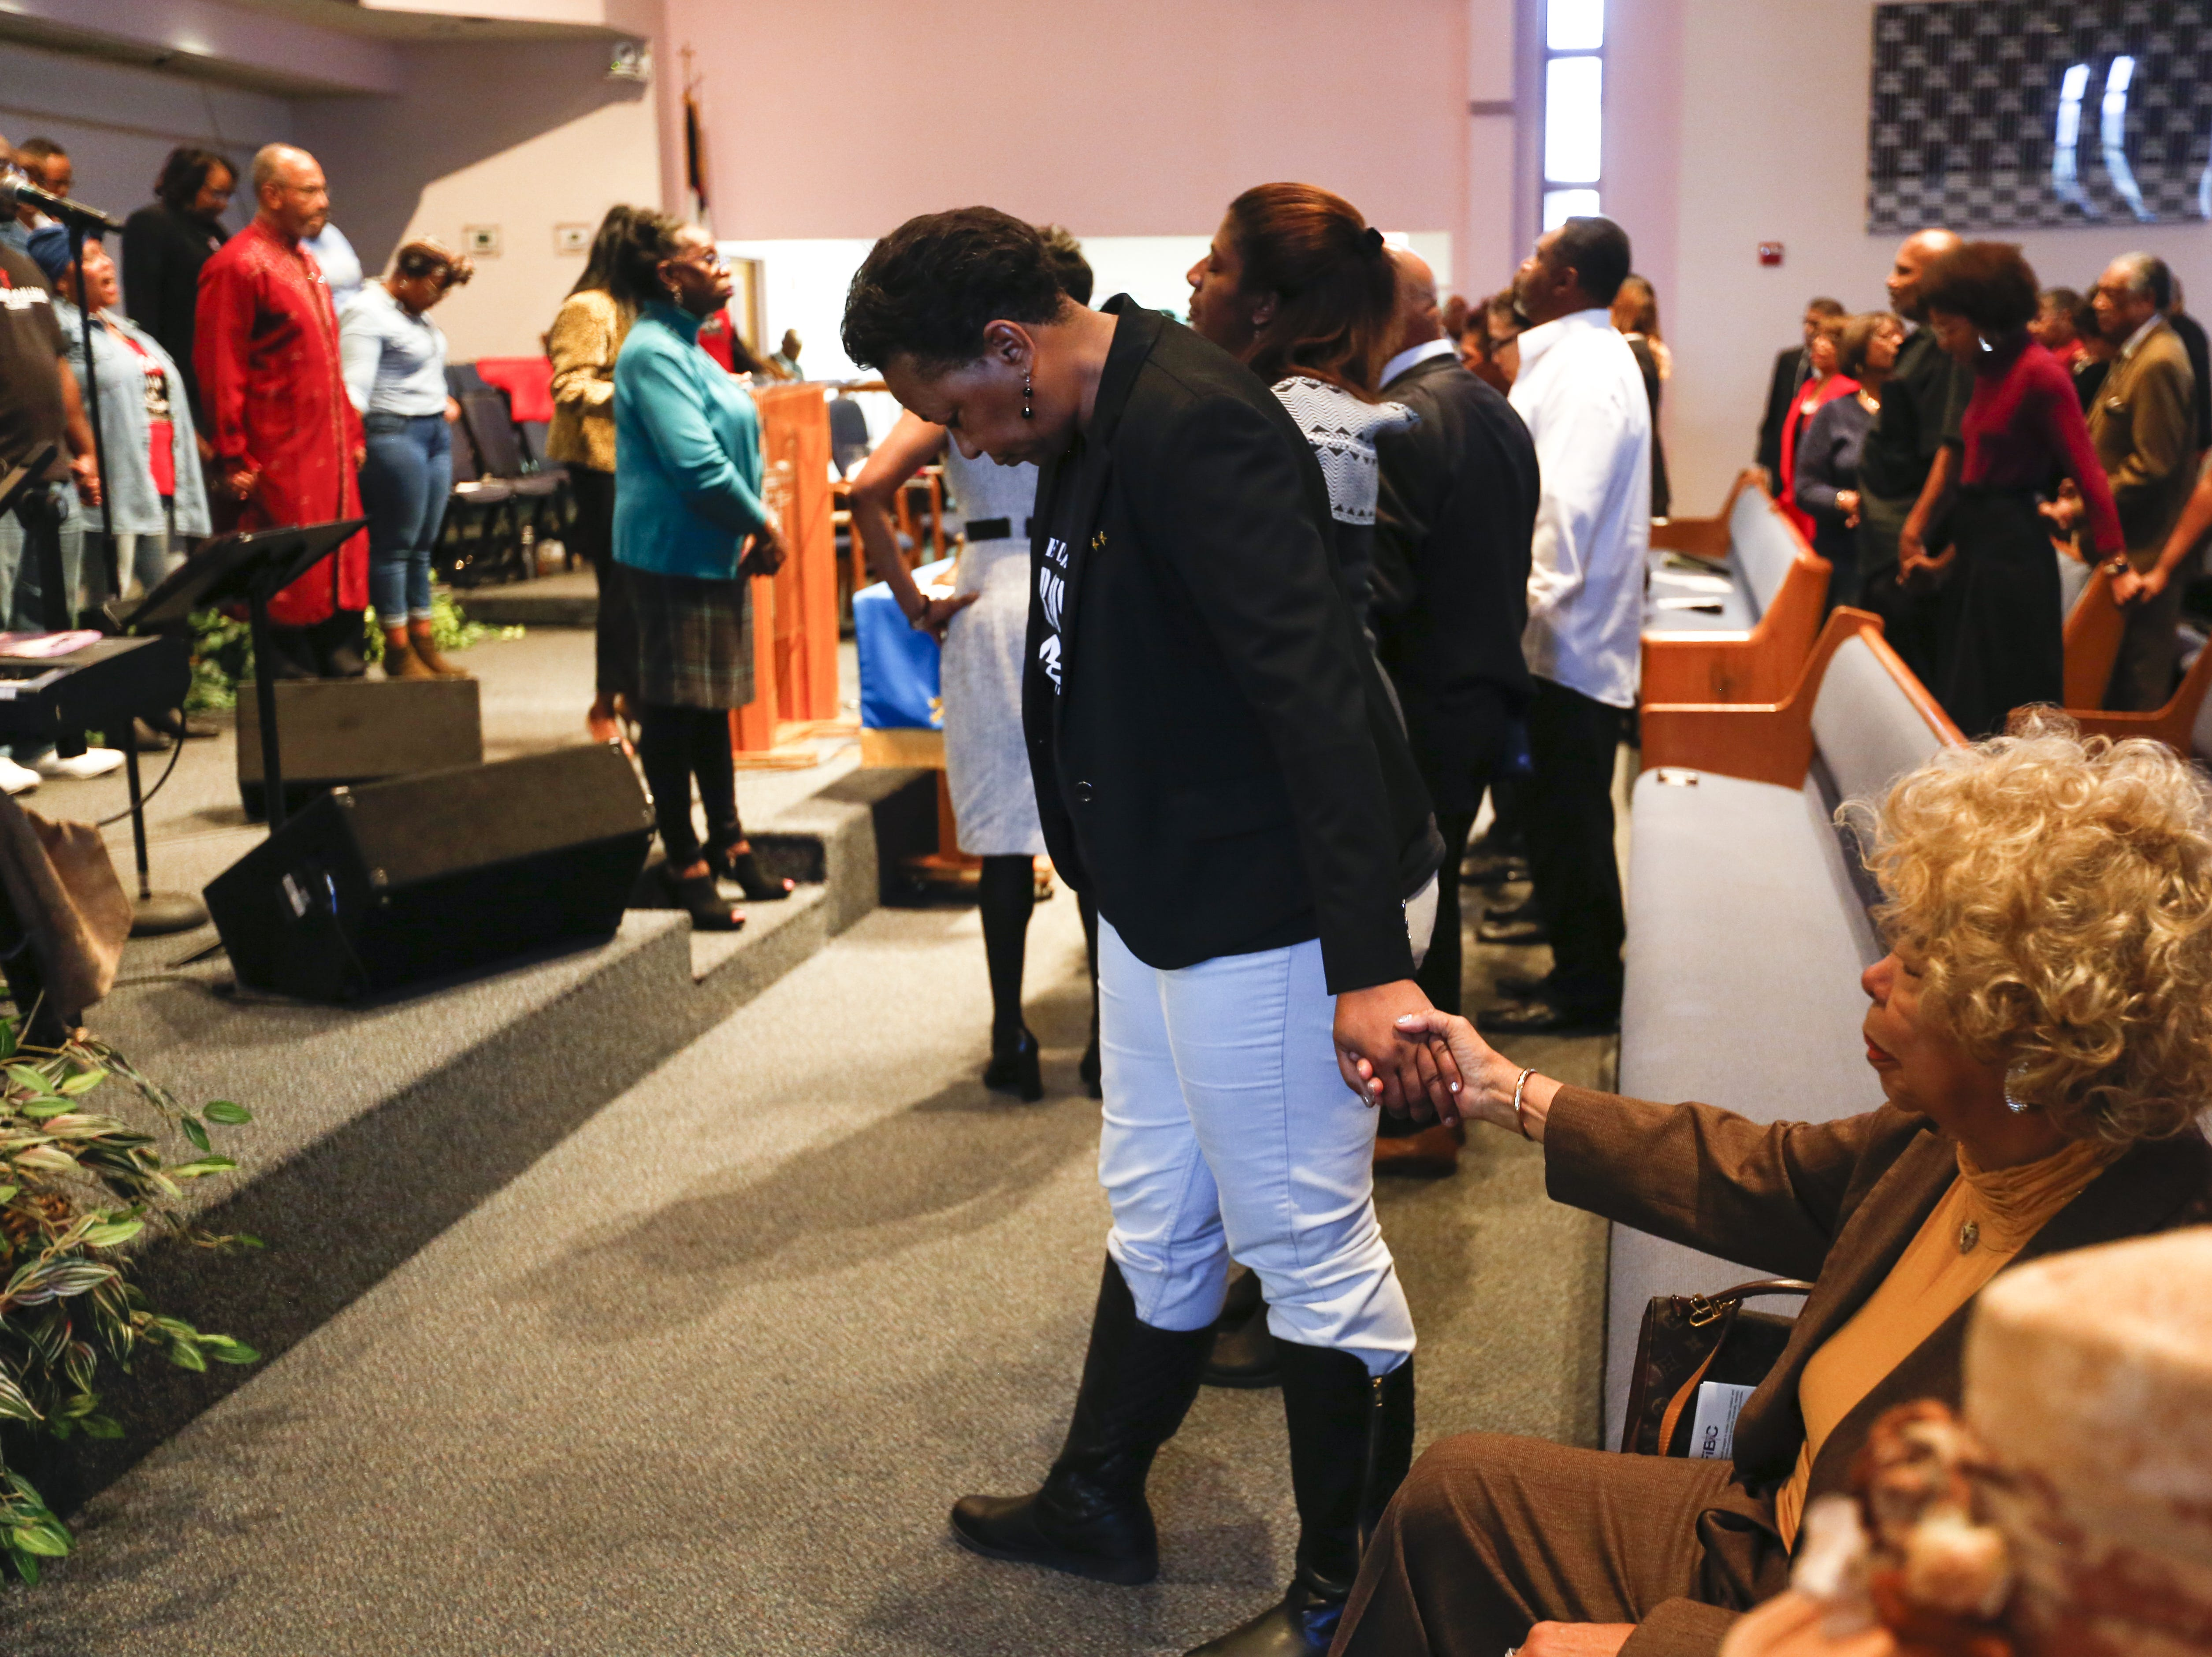 The congregation joins hands in prayer at First Institutional Baptist Church on Sunday, Jan. 20, 2019.